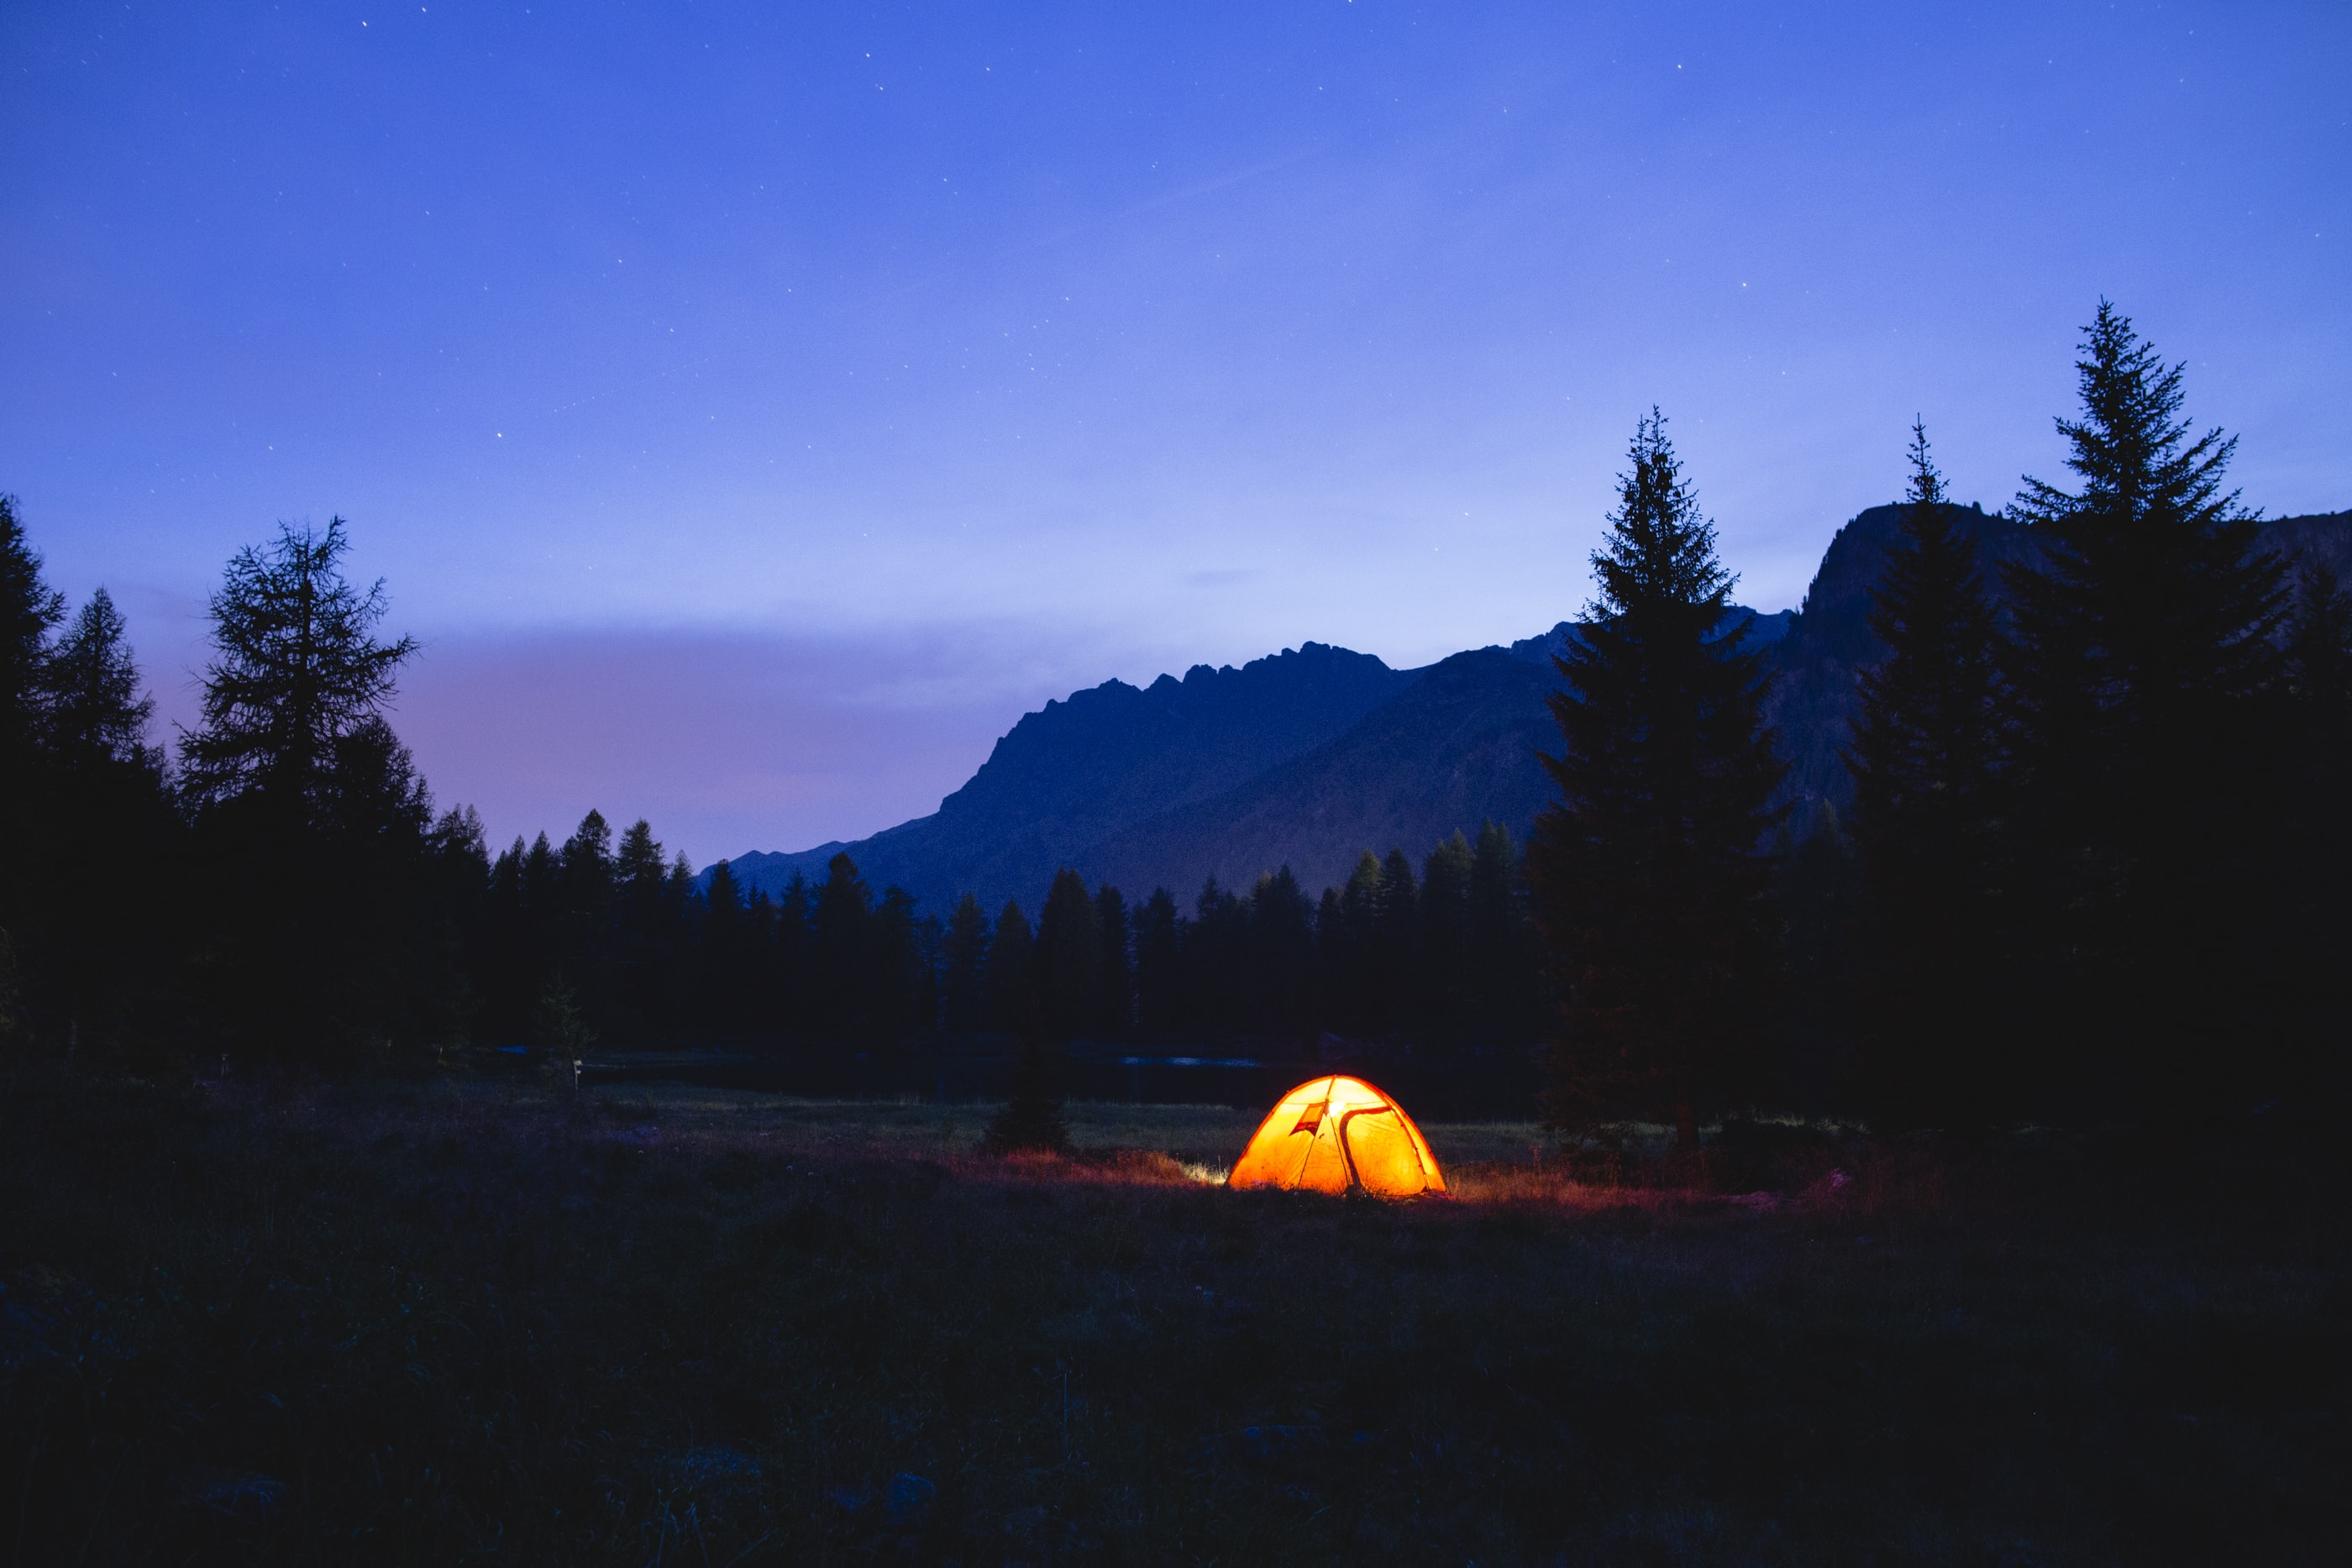 orange dome tent surrounded by silhouette of trees at blue hour